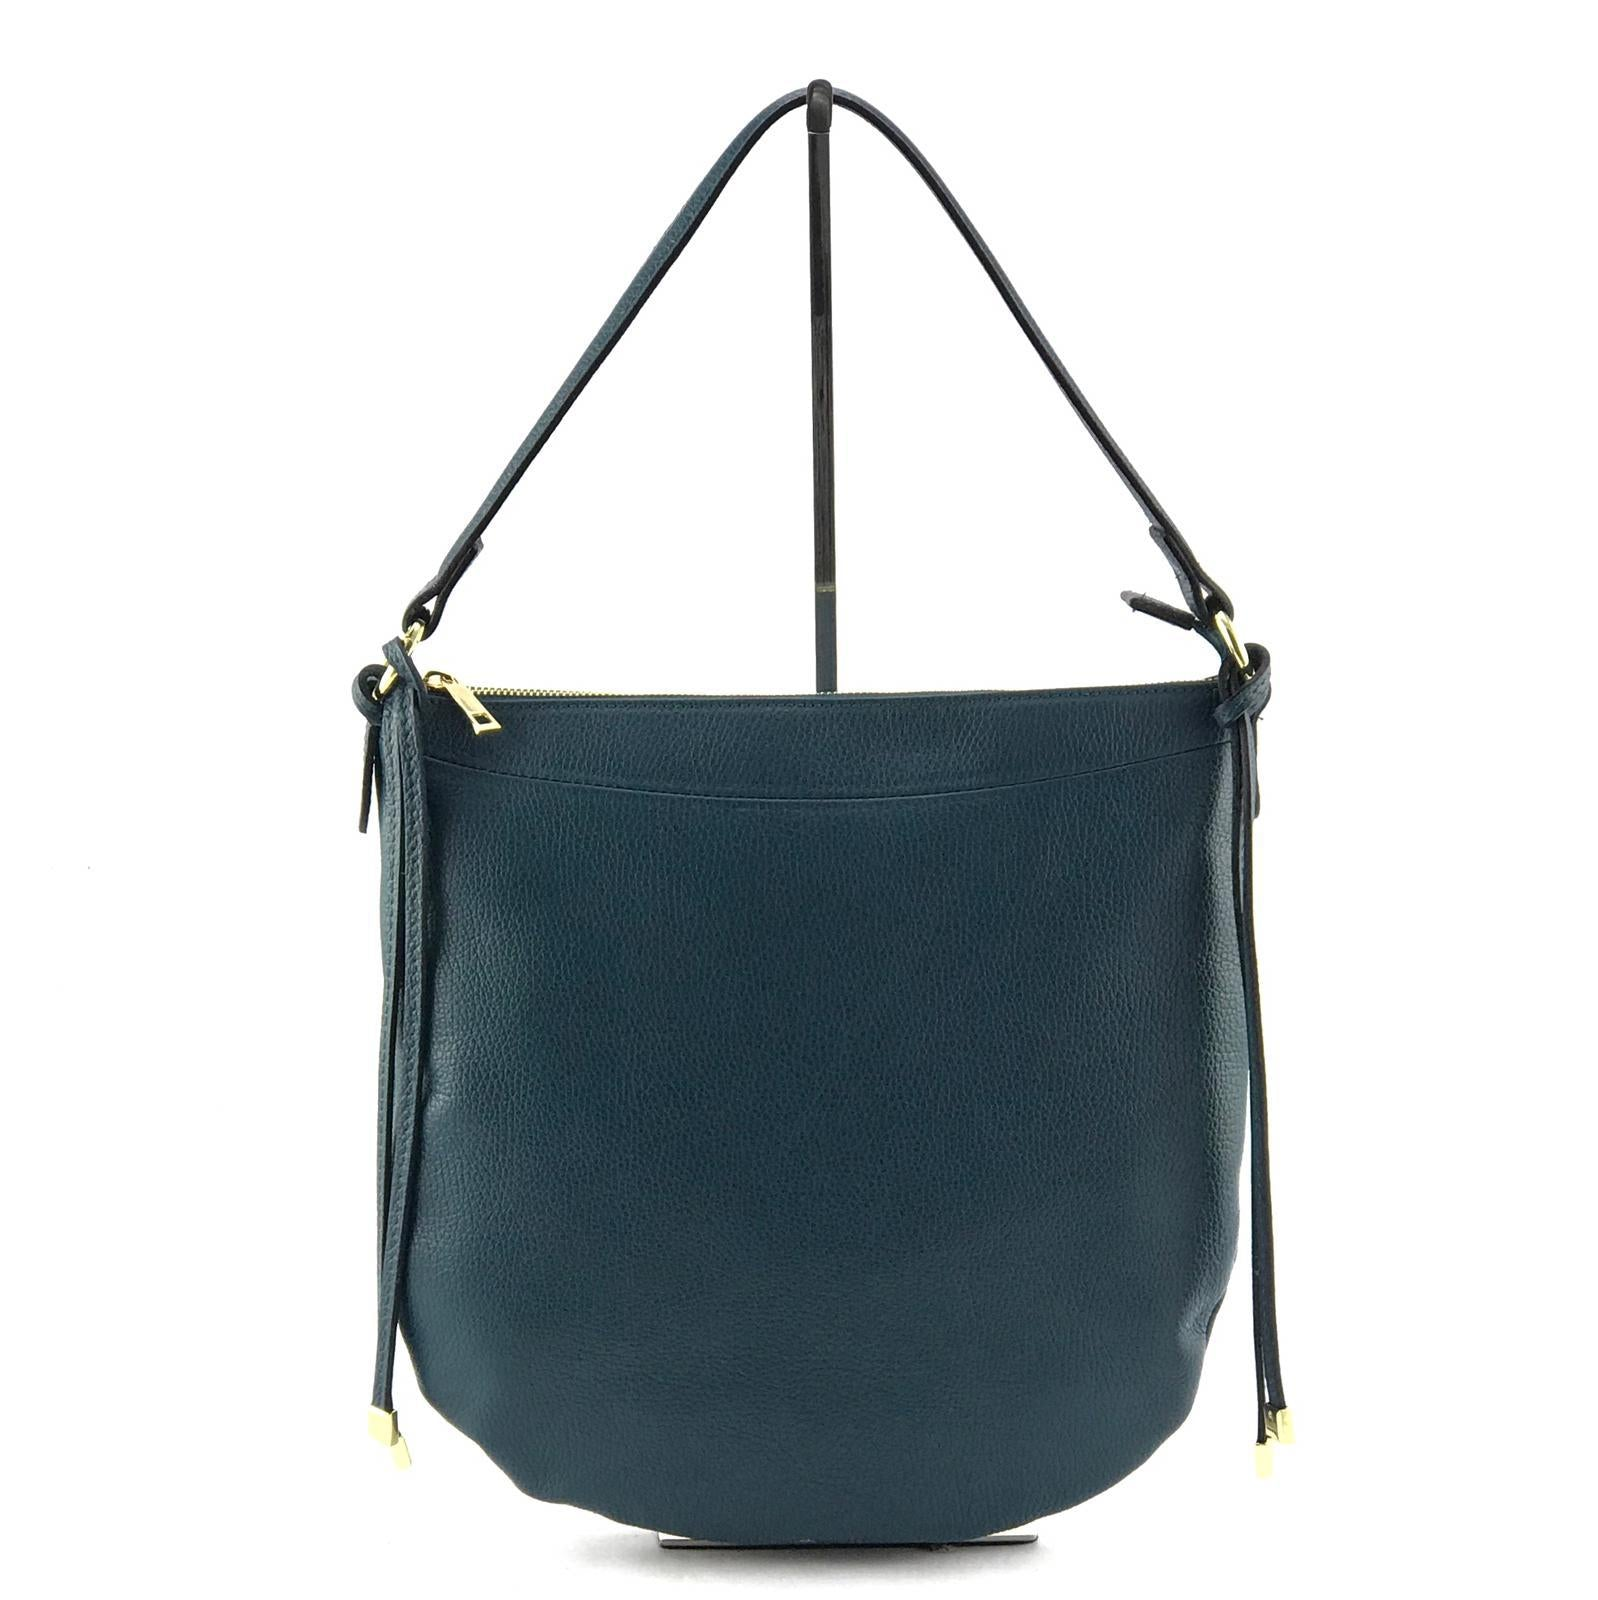 Teal Shoulder Bag by Marlon Firenze